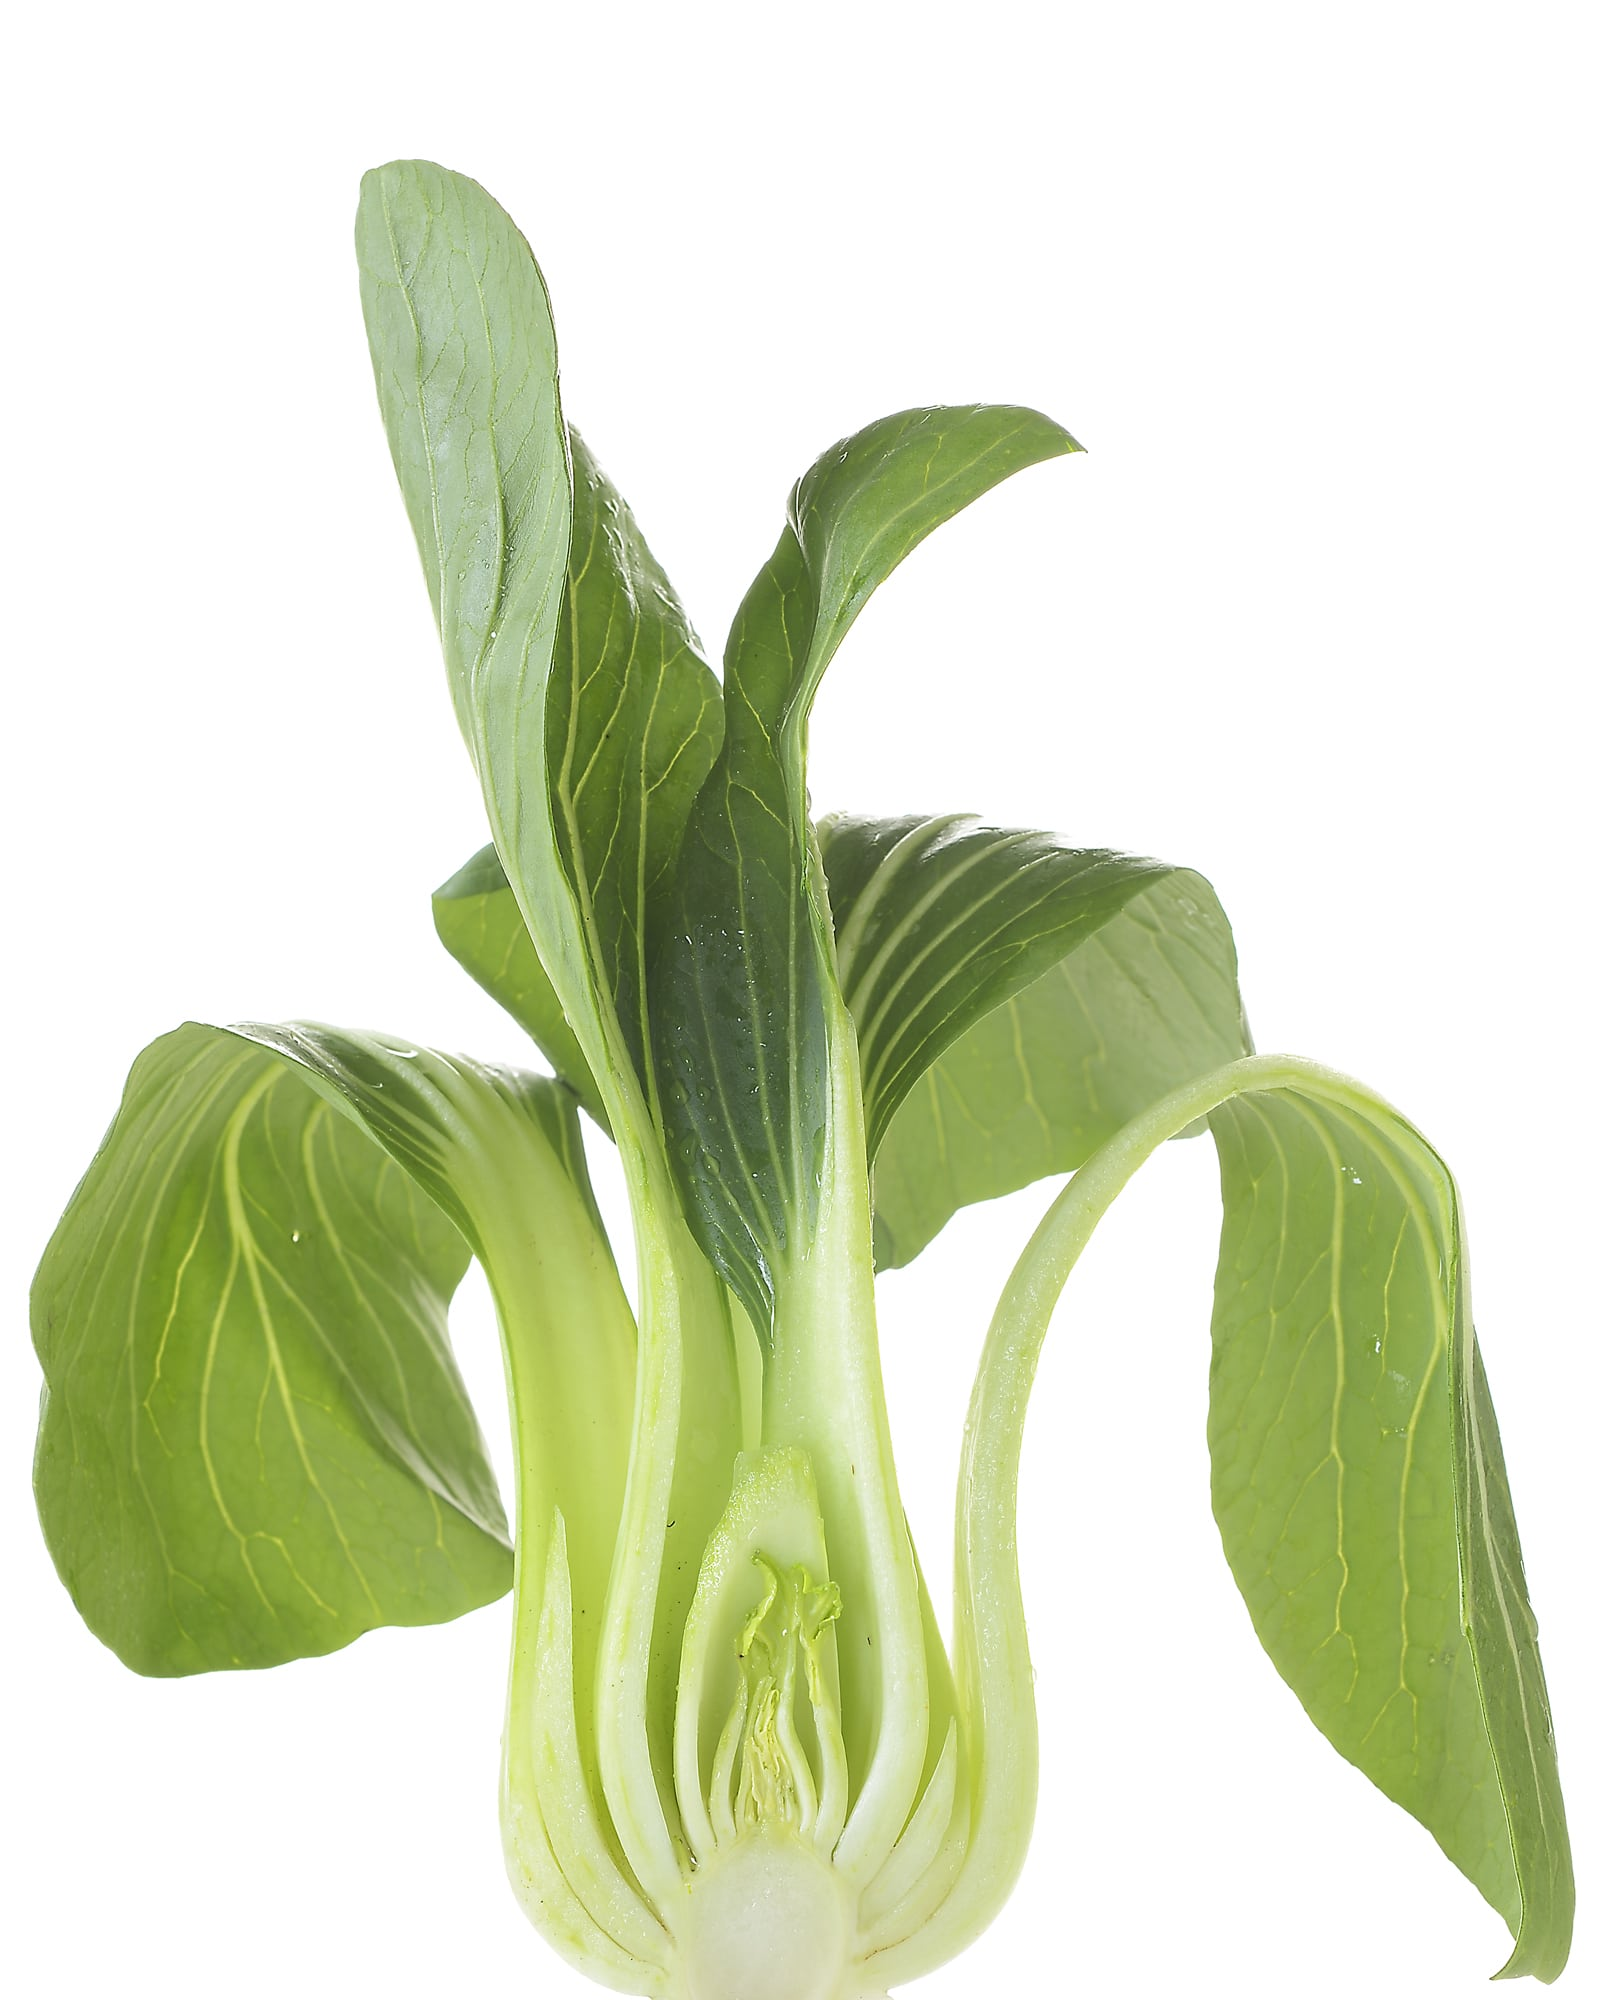 cross section of leek stalk and greens on high key white background Product Photography